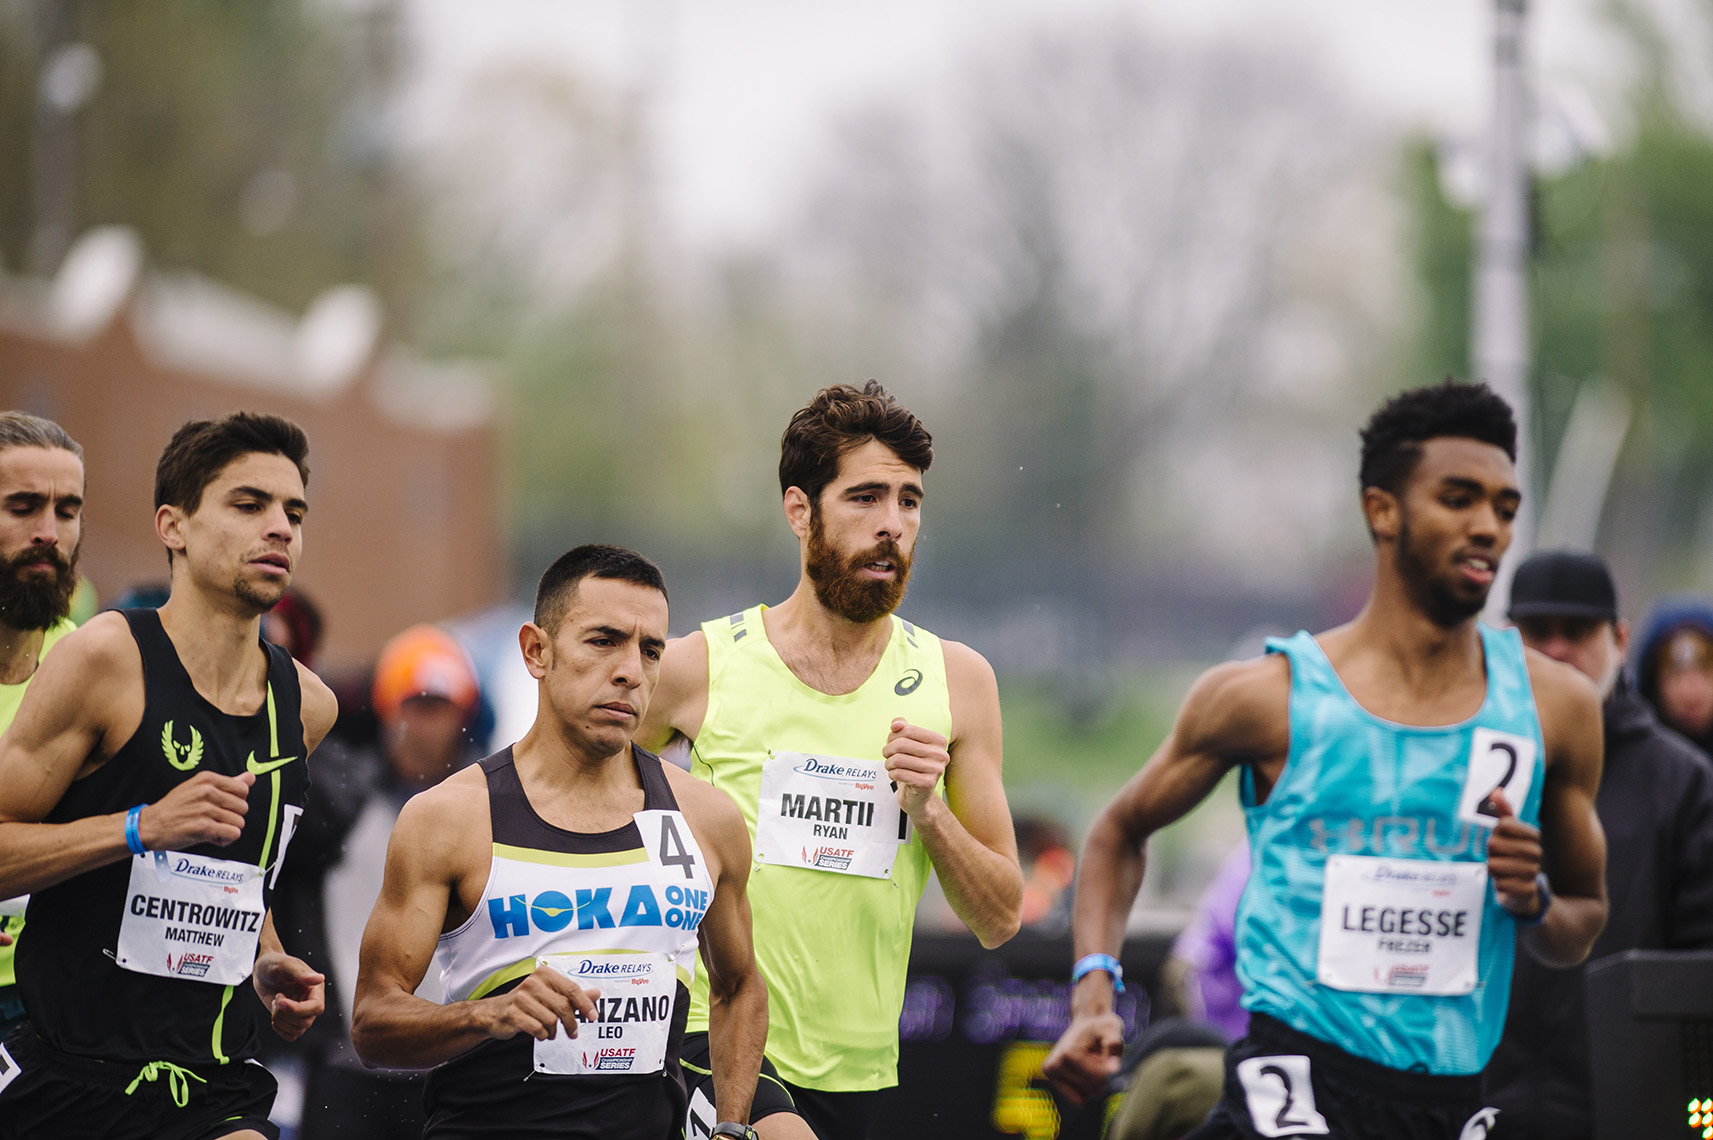 ryan-martin-800-meters-drake-relays